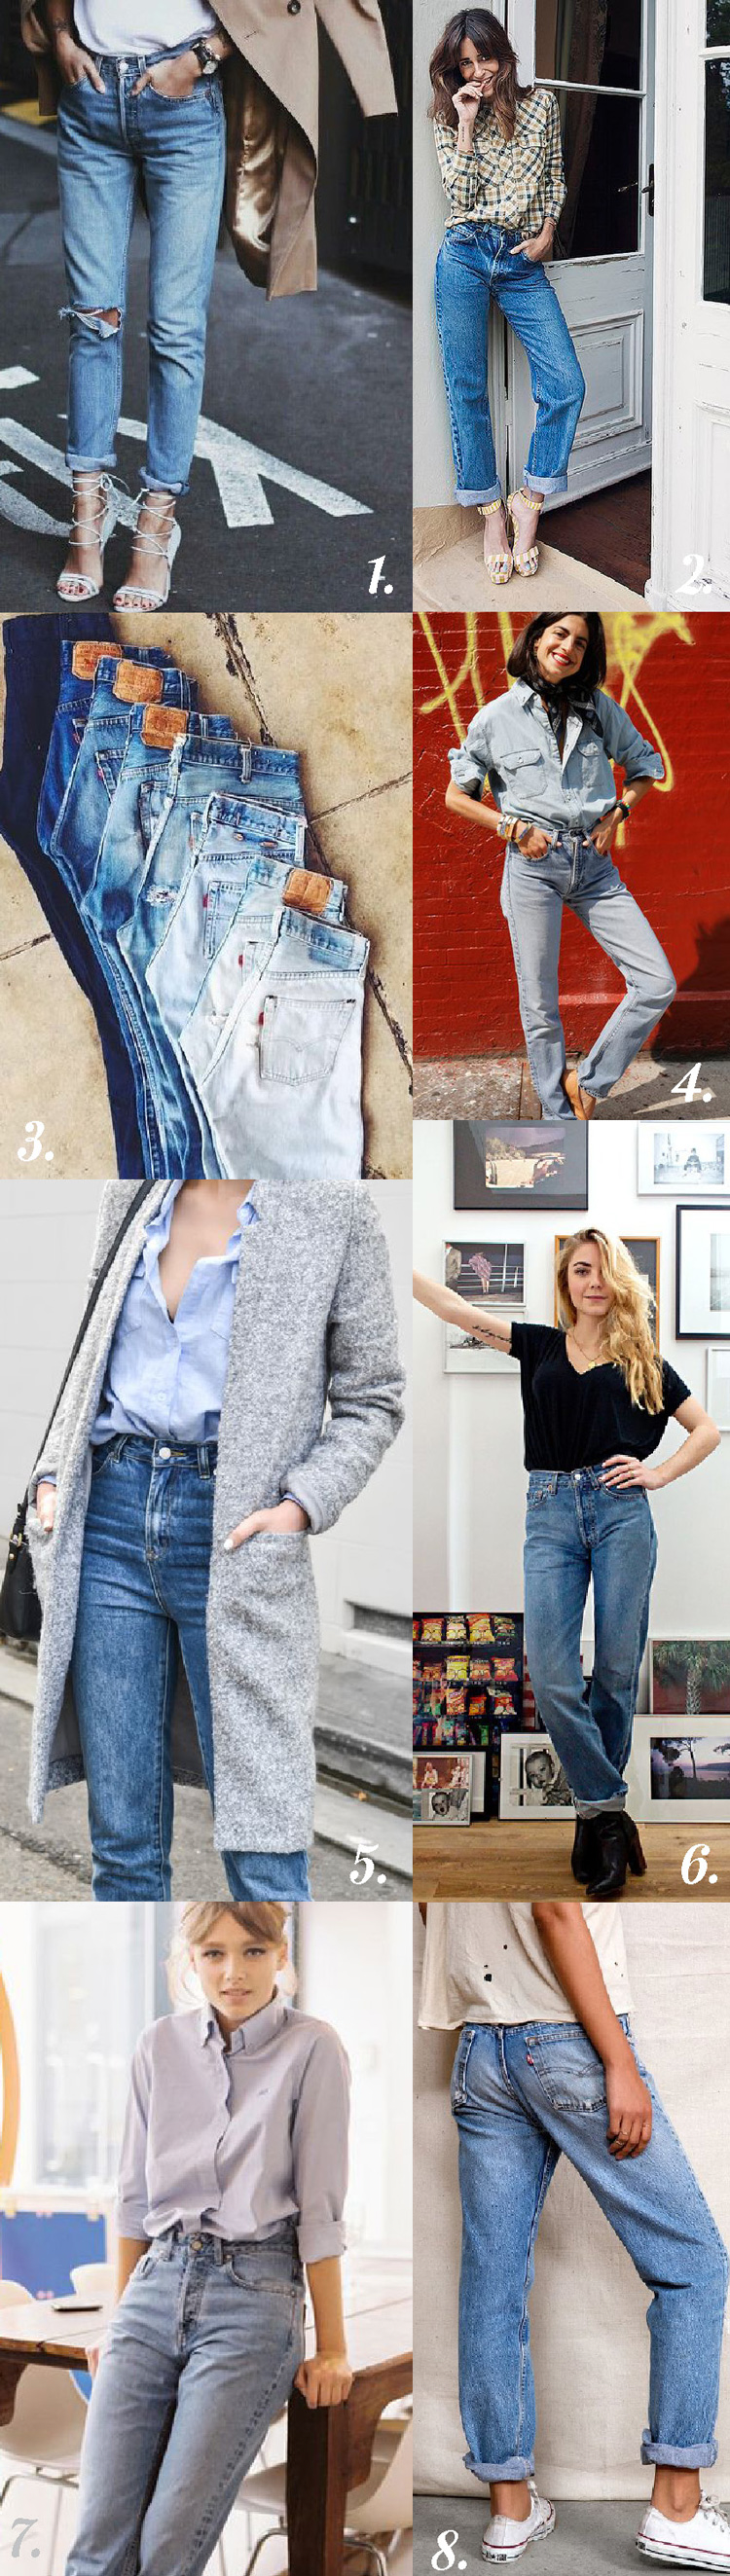 Vintage-Levis-501s-Jeans-styling-inspiration